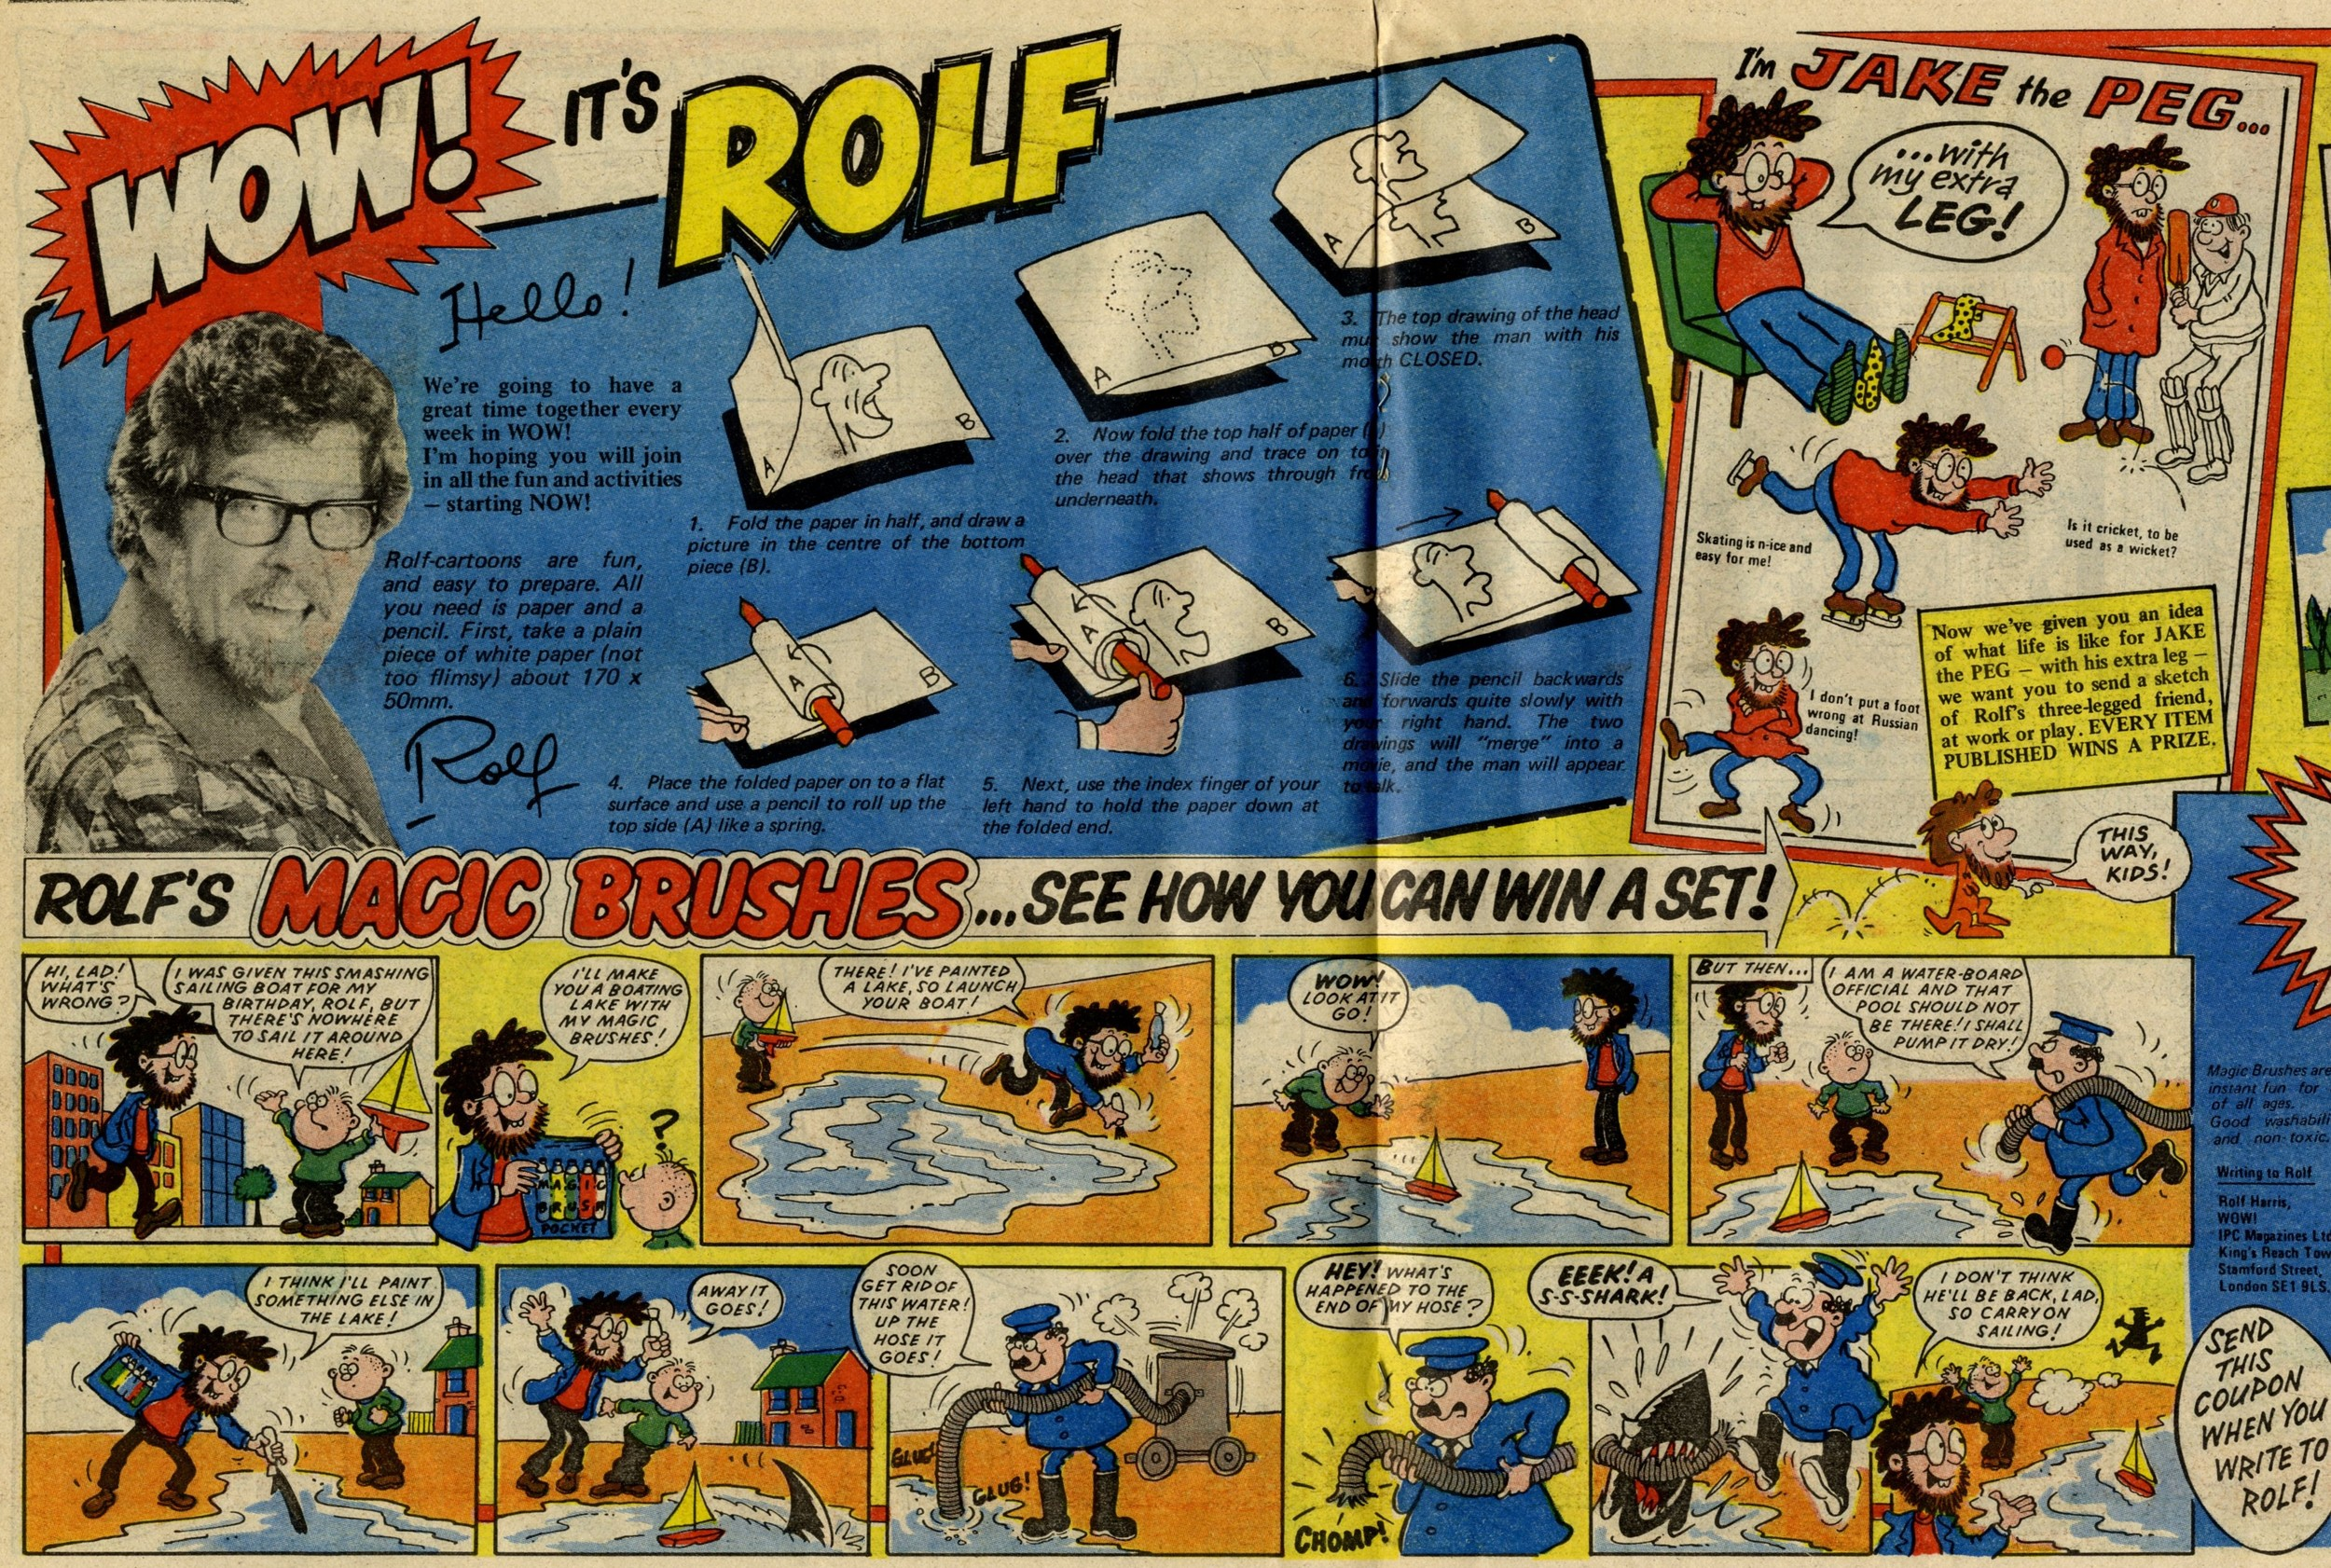 Rolf's Magic Brushes and I'm Jake the Peg: Paul Ailey? (artist)